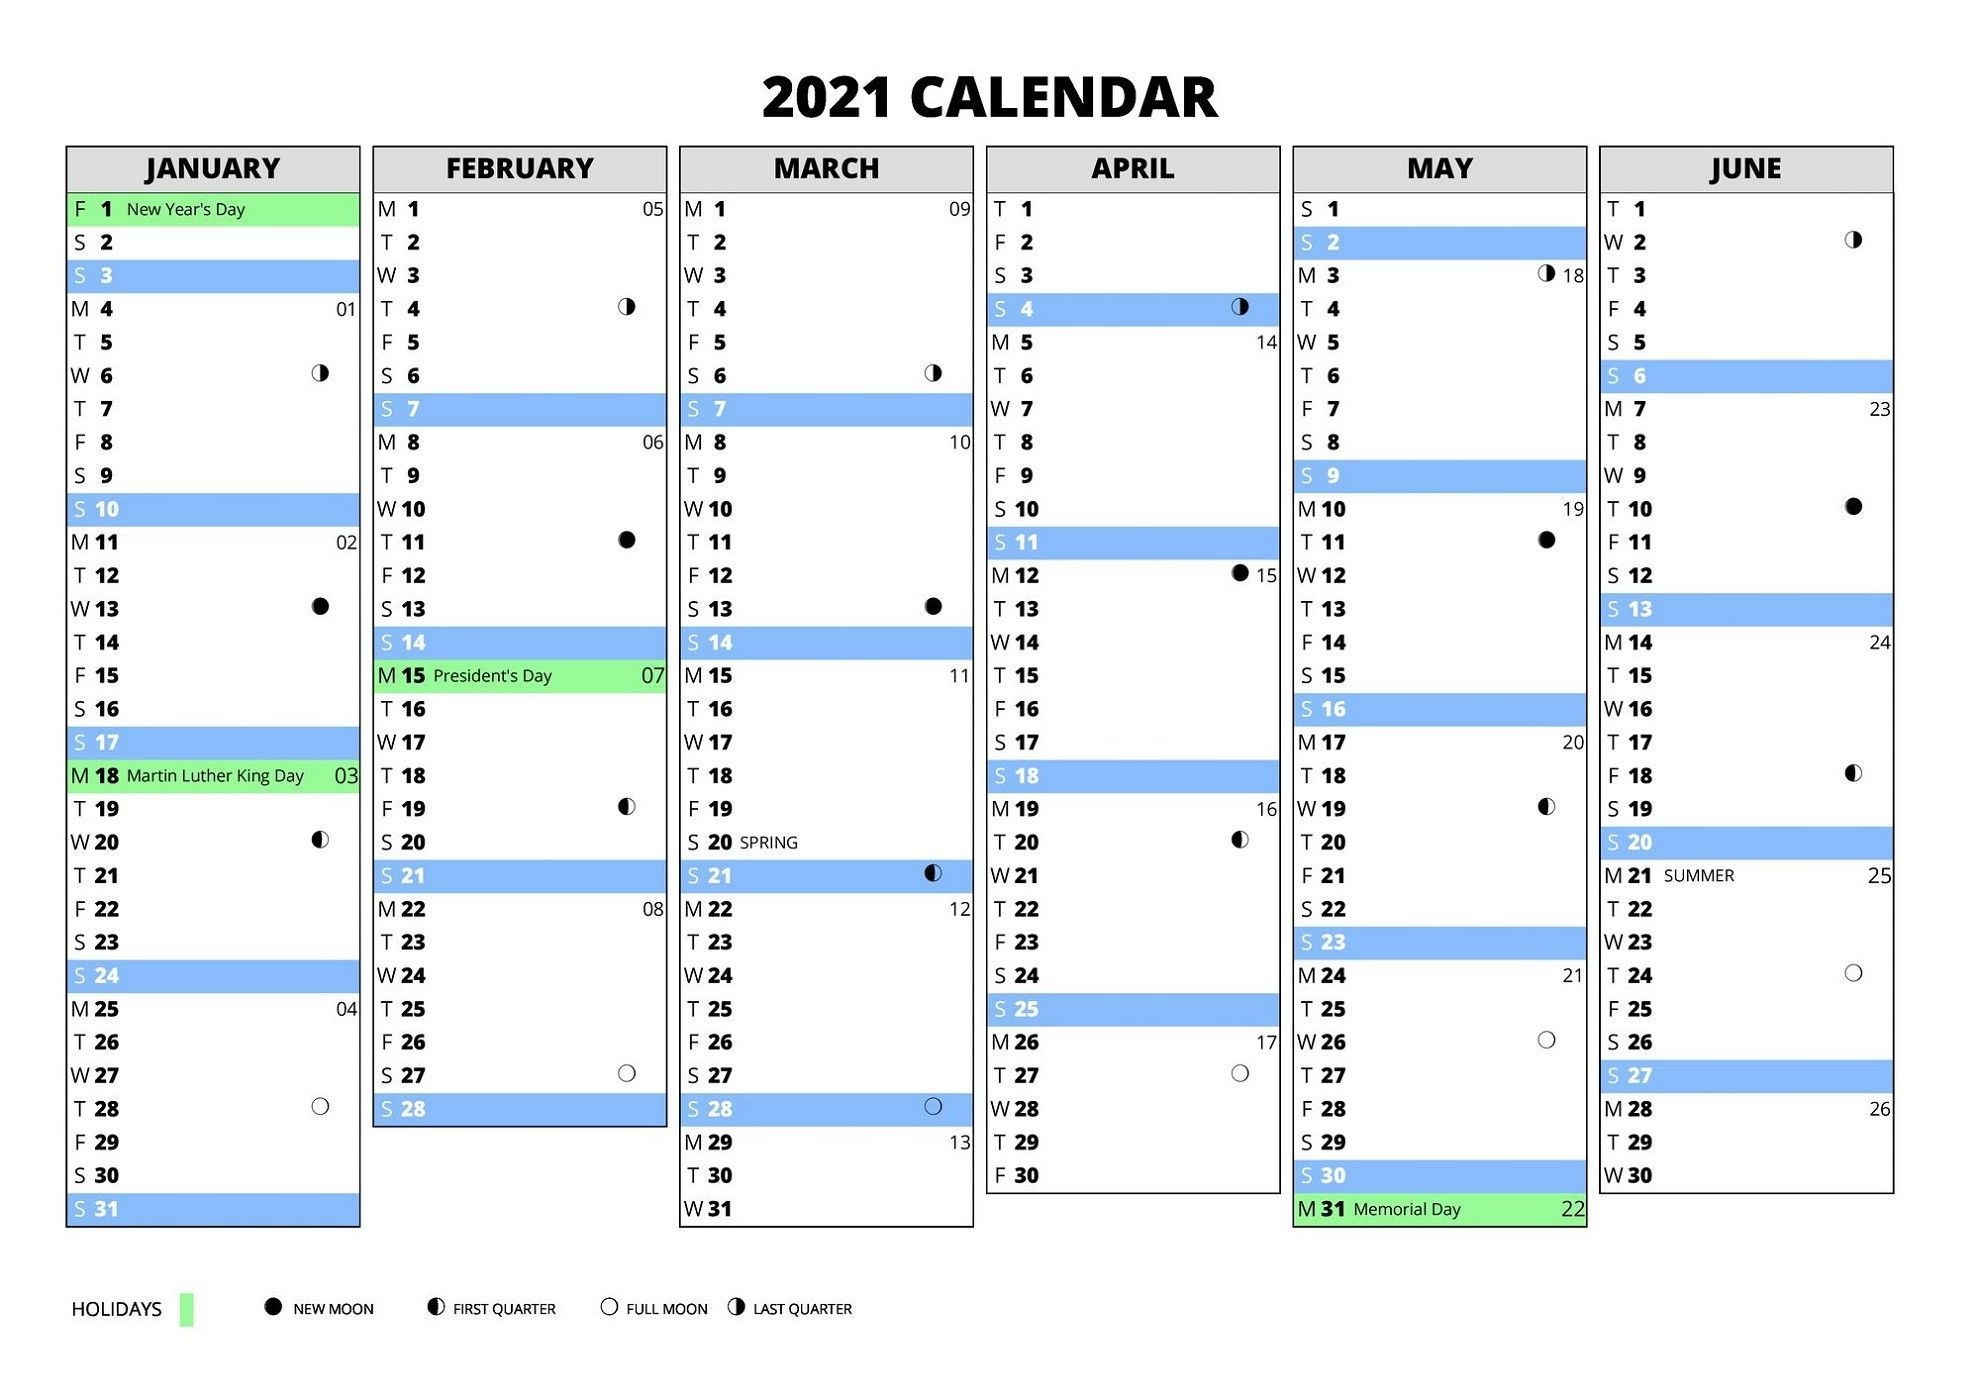 Pincalendar Design On Printable Calendar Design In 2020